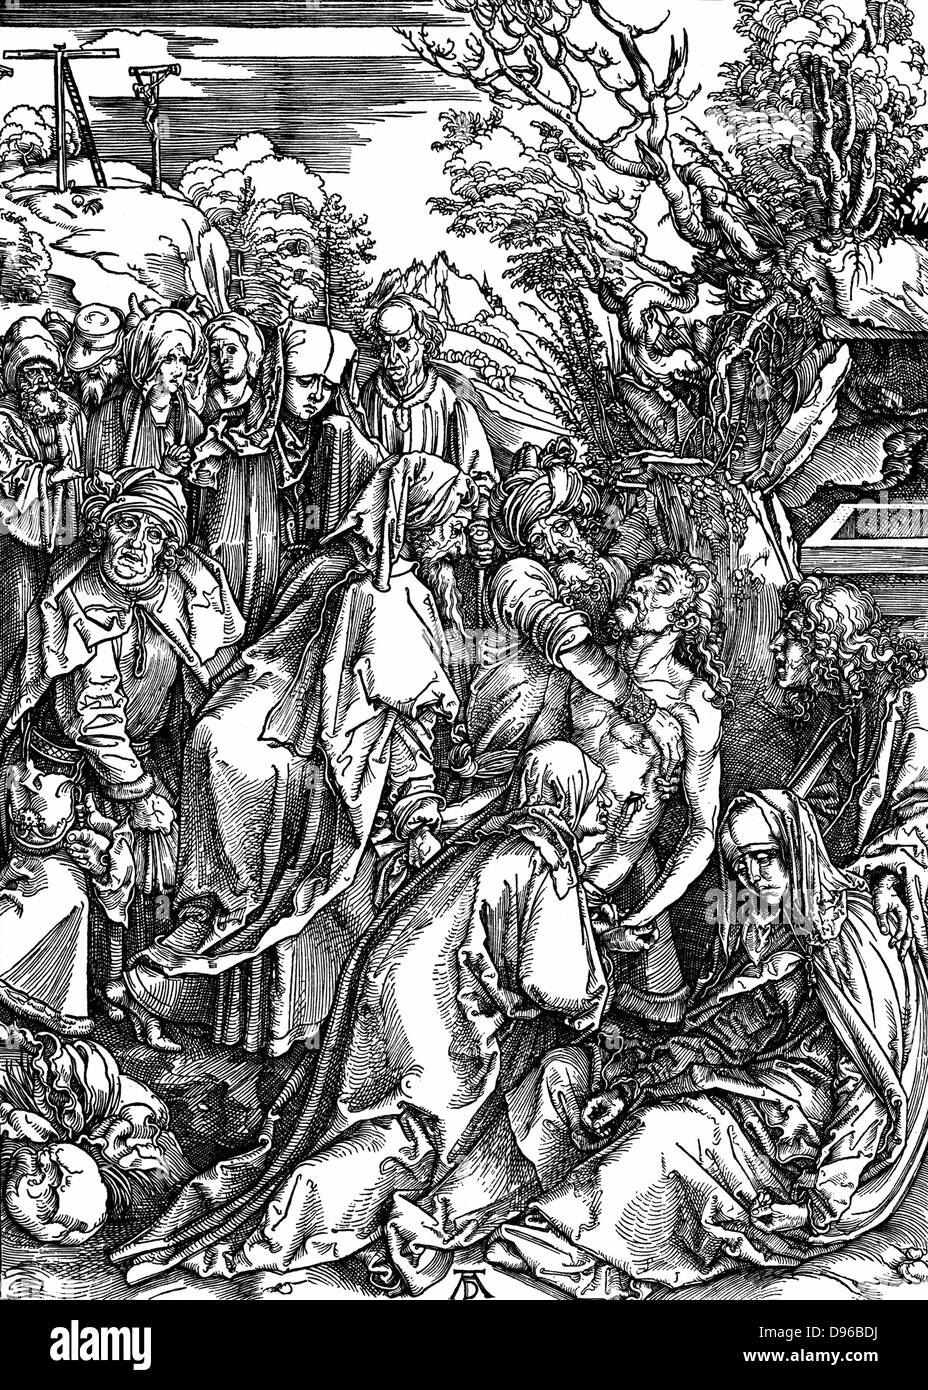 The Entombment.  Woodcut by Albrecht Durer  from his series of seven woodcuts for The Great Passion c1497-1500 - Stock Image